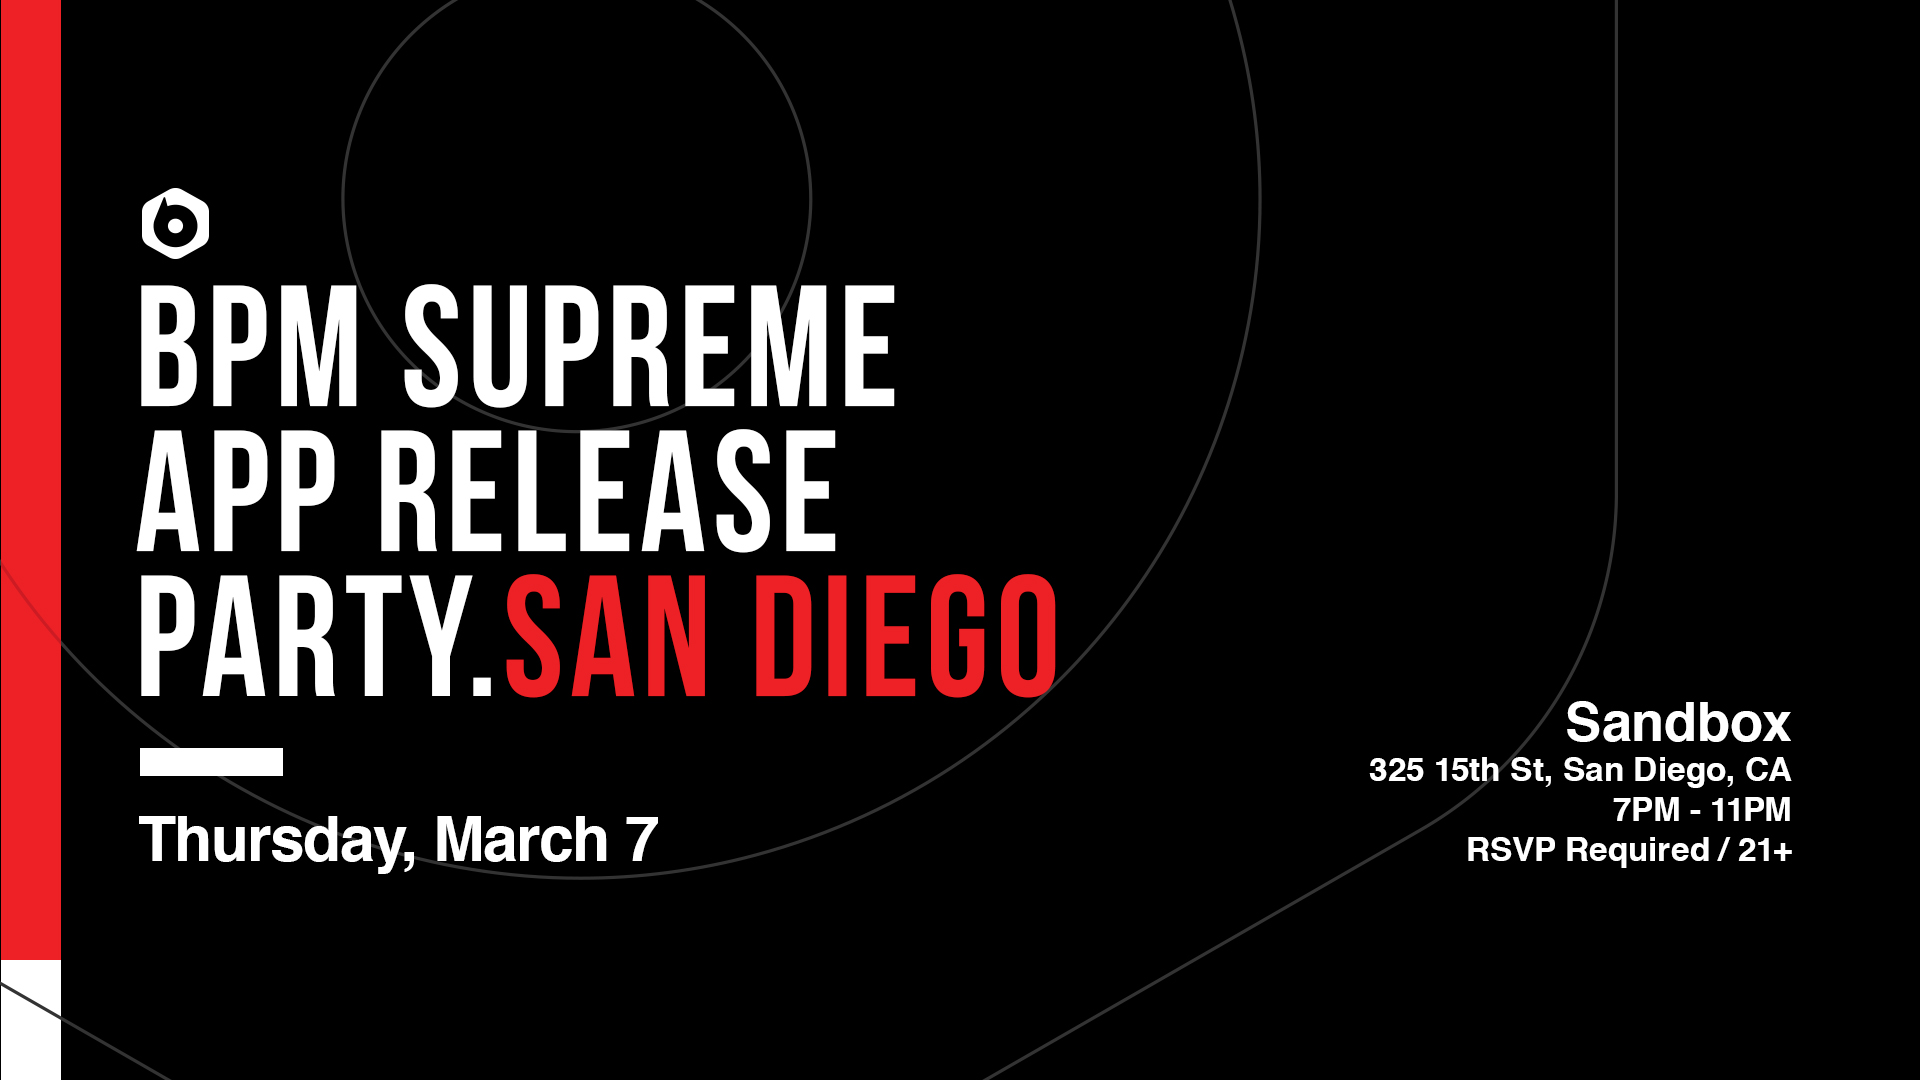 Announcing the BPM Supreme App Release Party